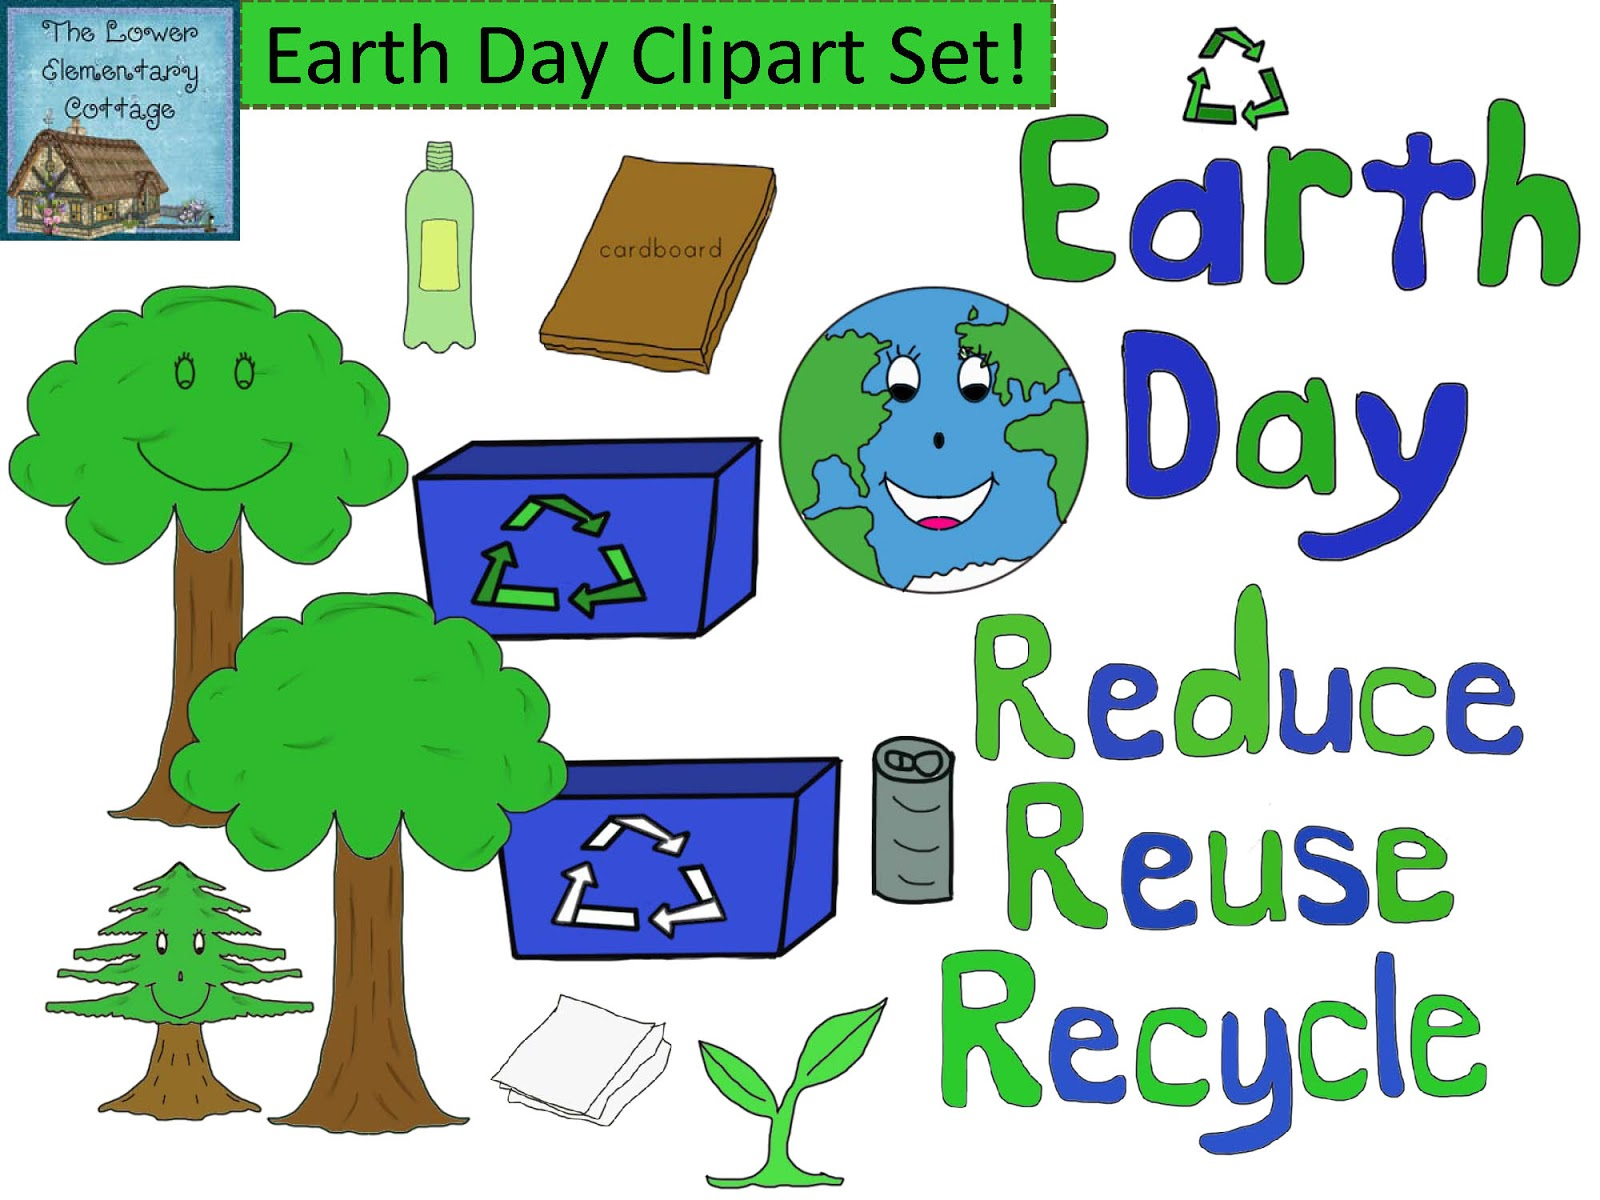 Earth Day Images Clip Art Wallpaper